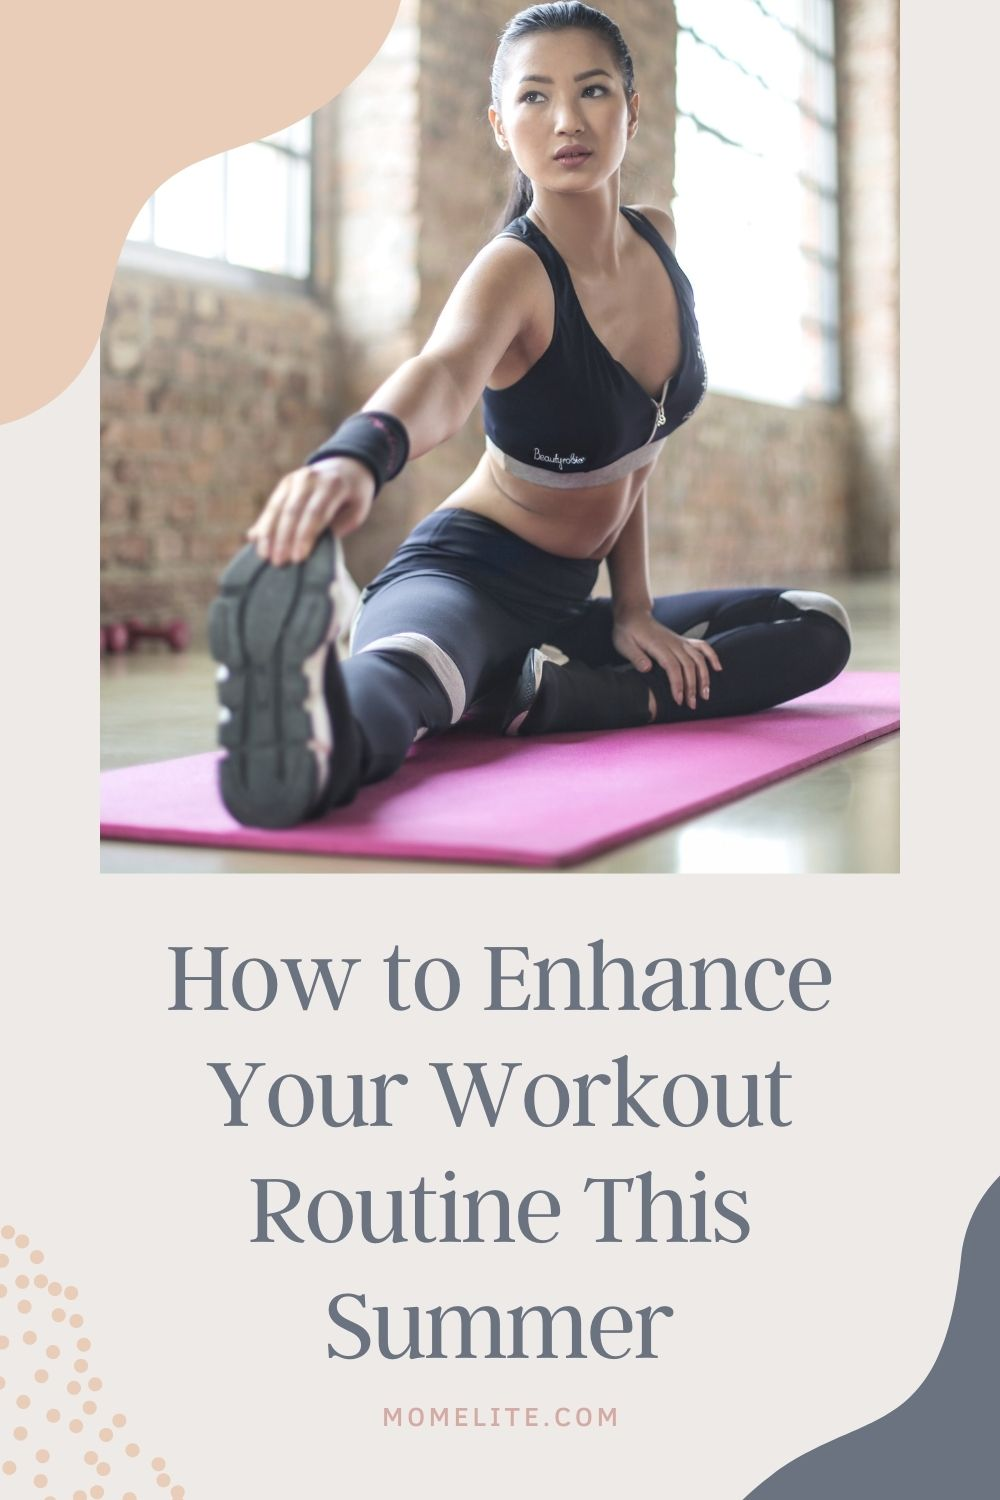 How to Enhance Your Workout Routine This Summer